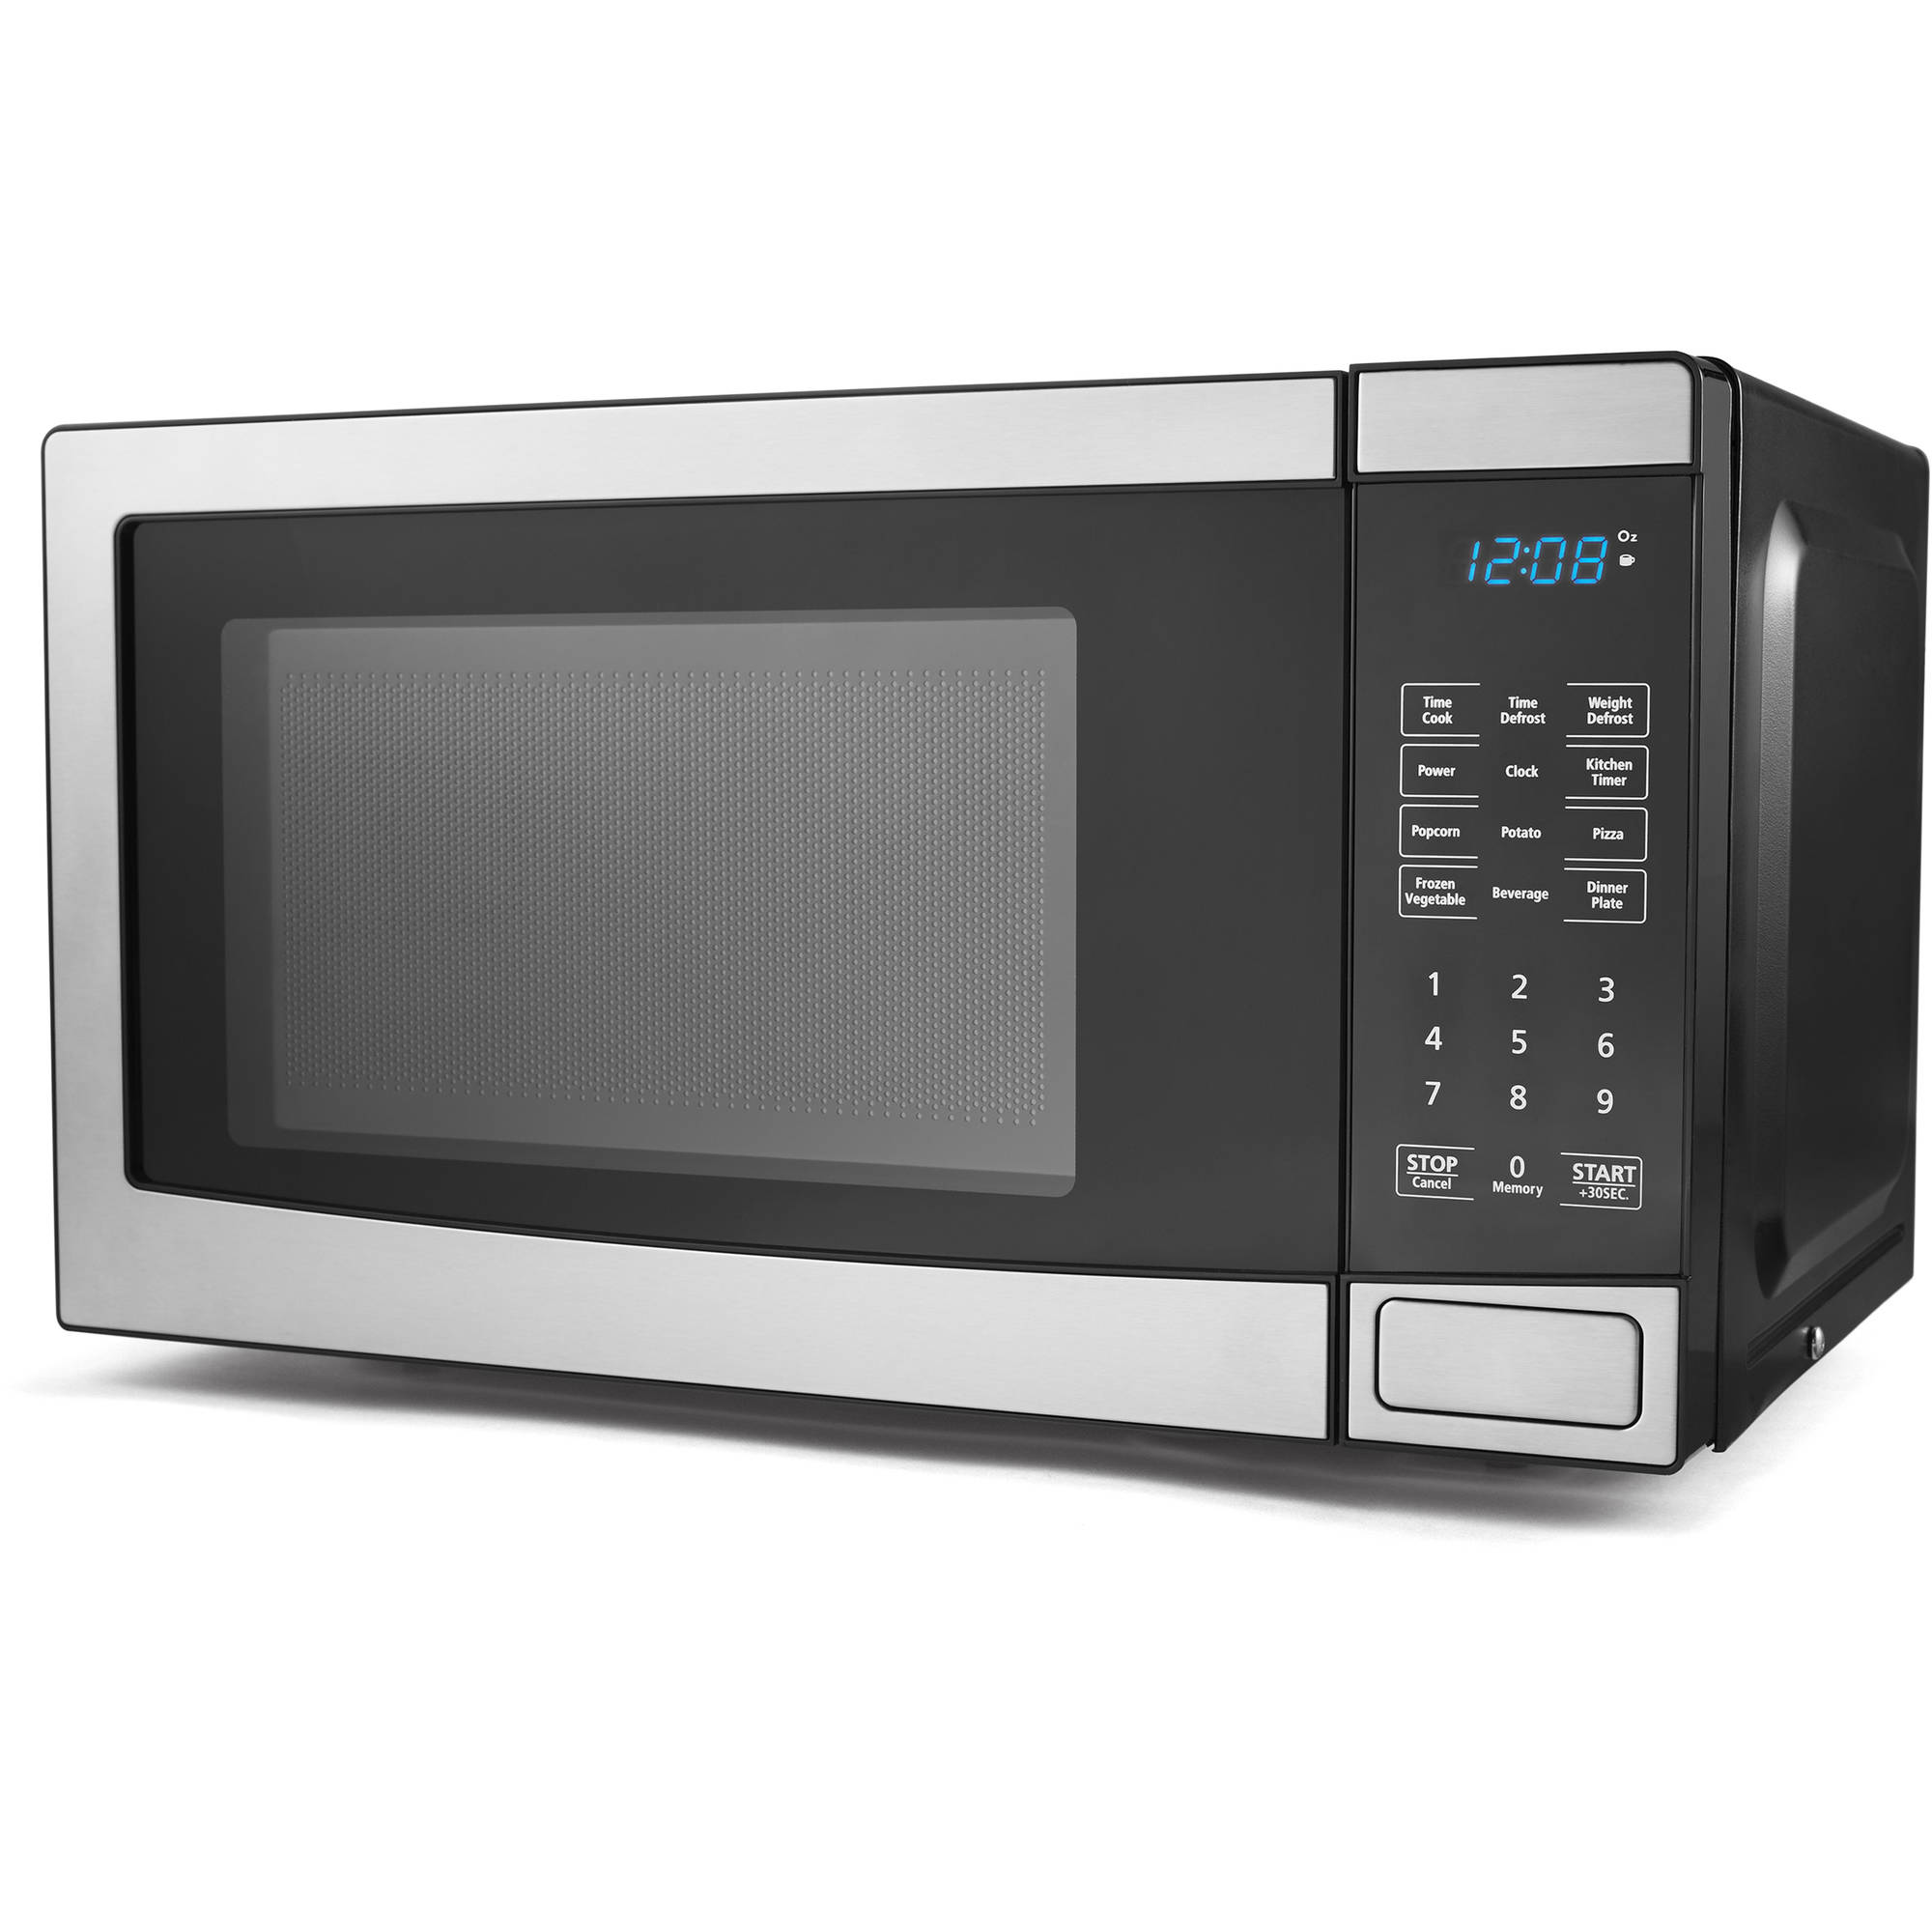 Mainstays 0.7 cu ft Microwave Oven, Stainless Steel